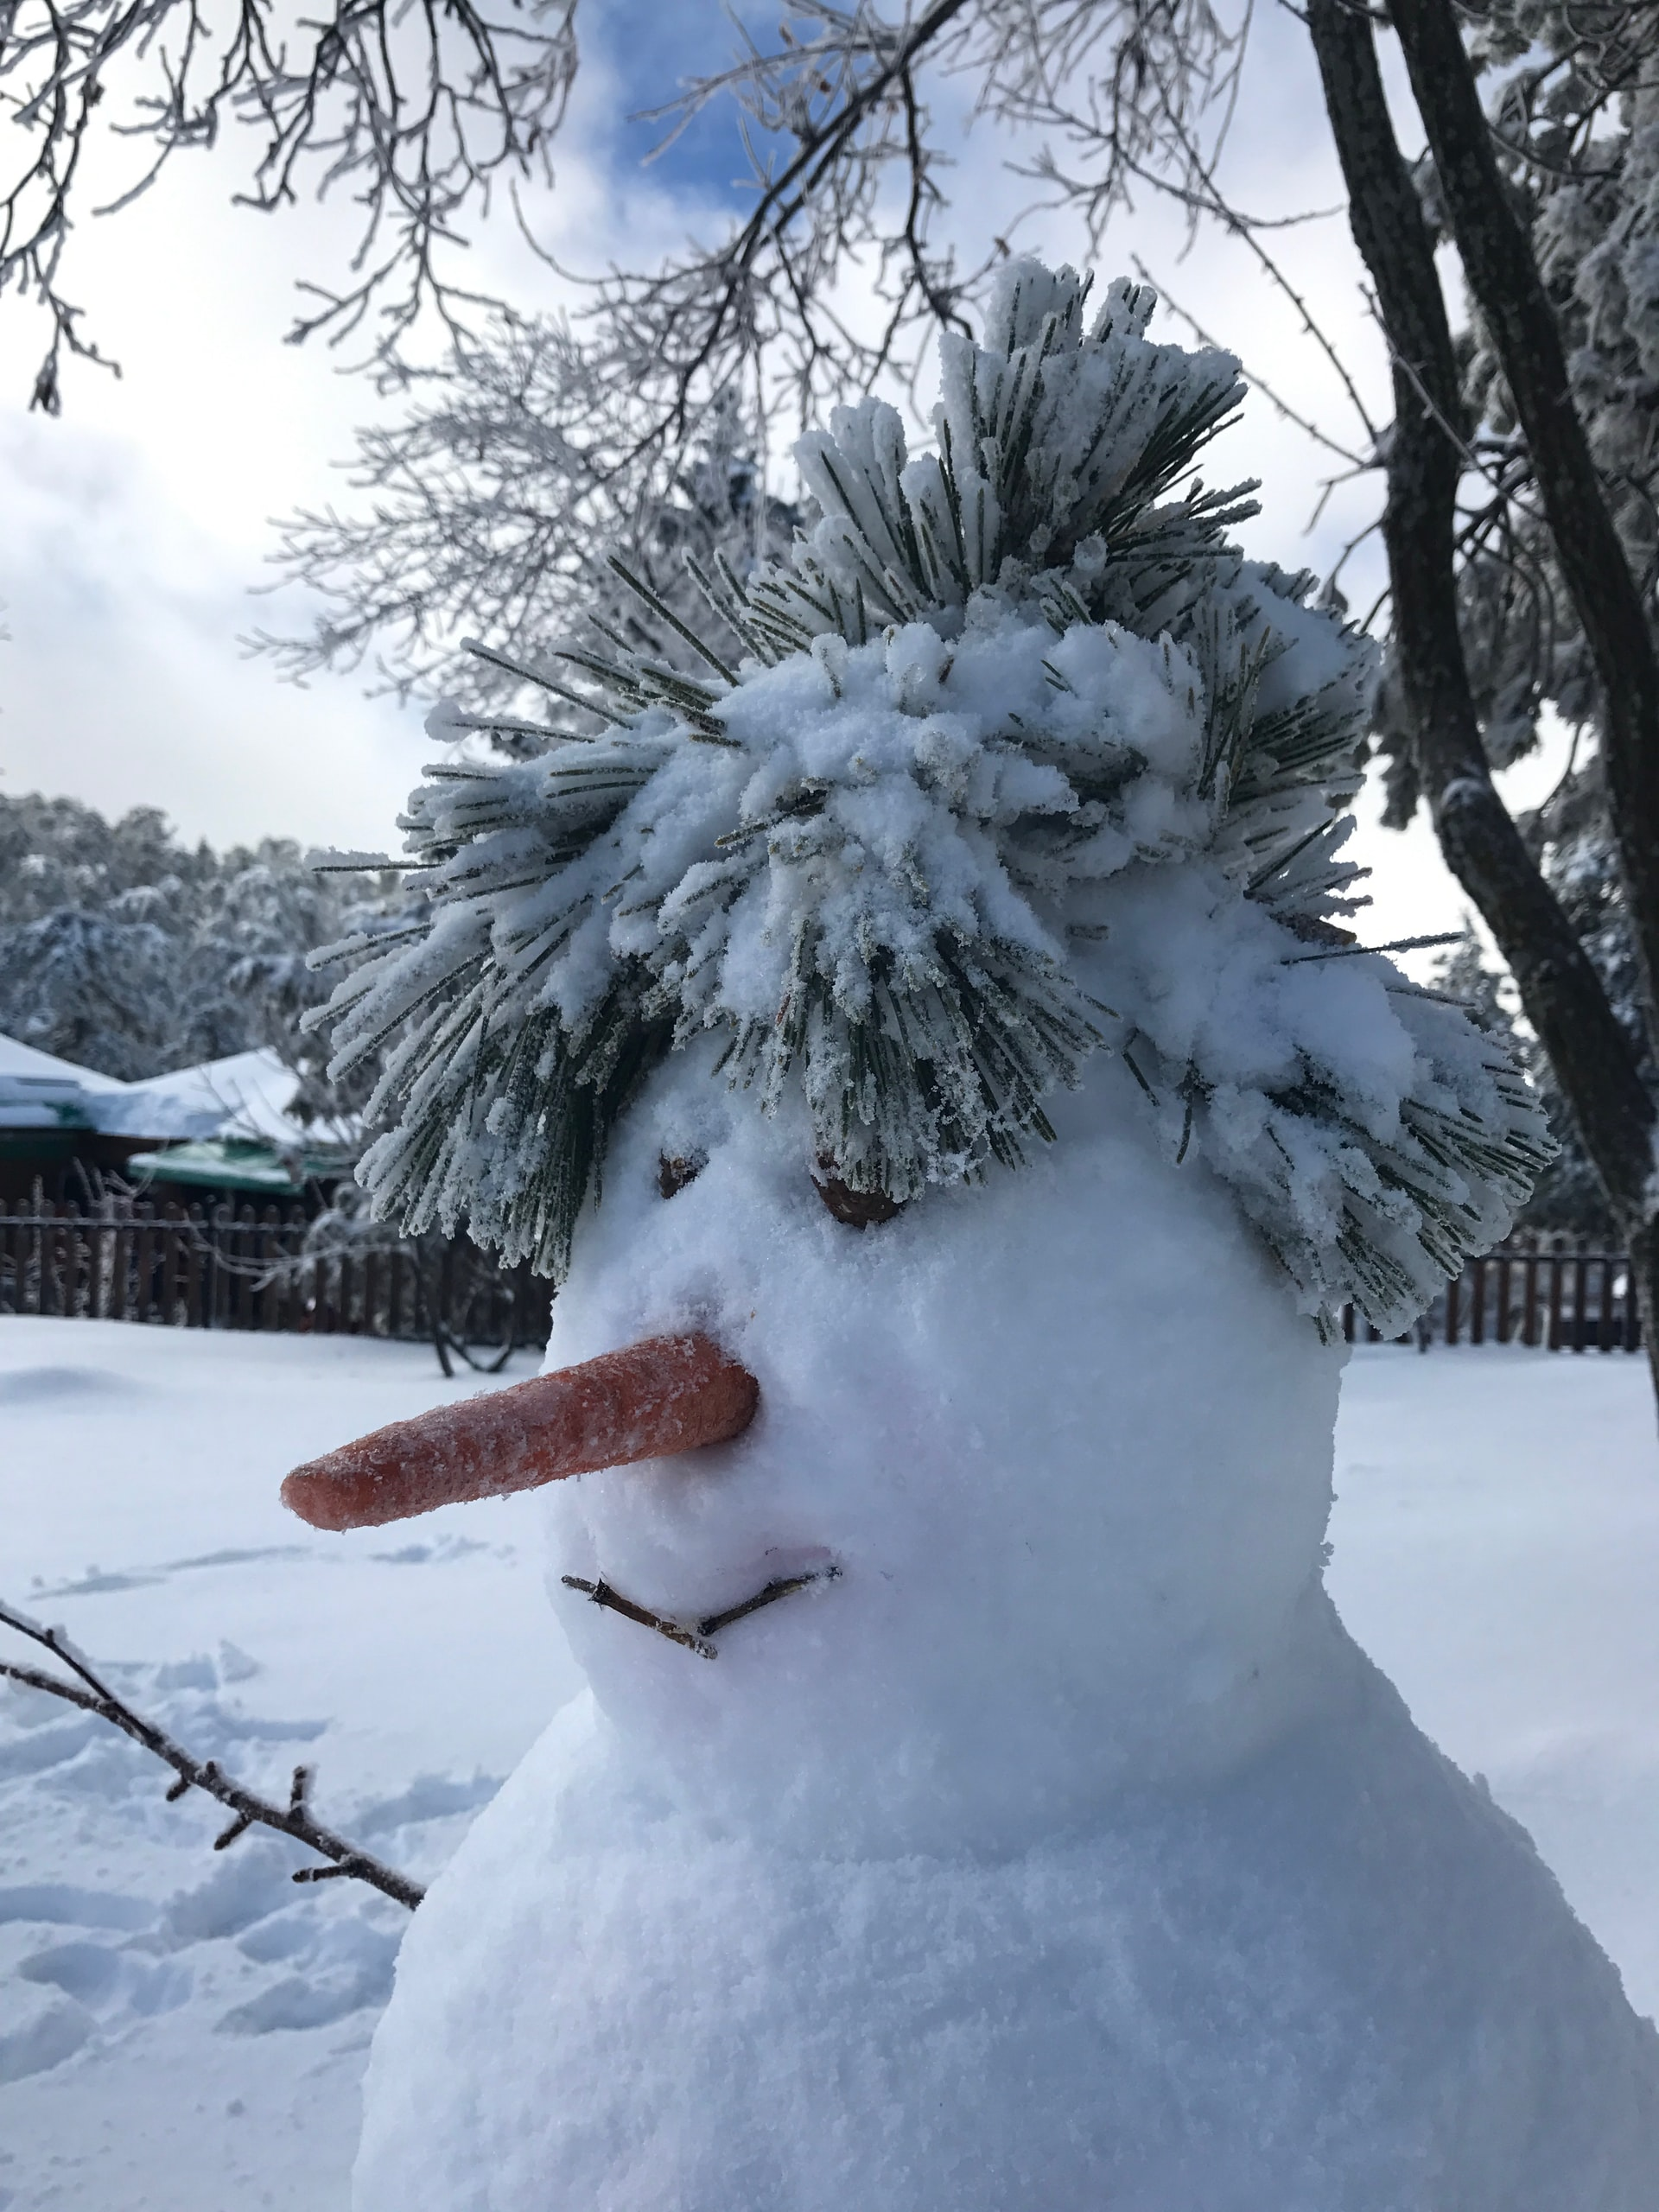 A snowman with snow-covered pine branches for hair. Photo courtesy of Andreas Avgousti on Unsplash.